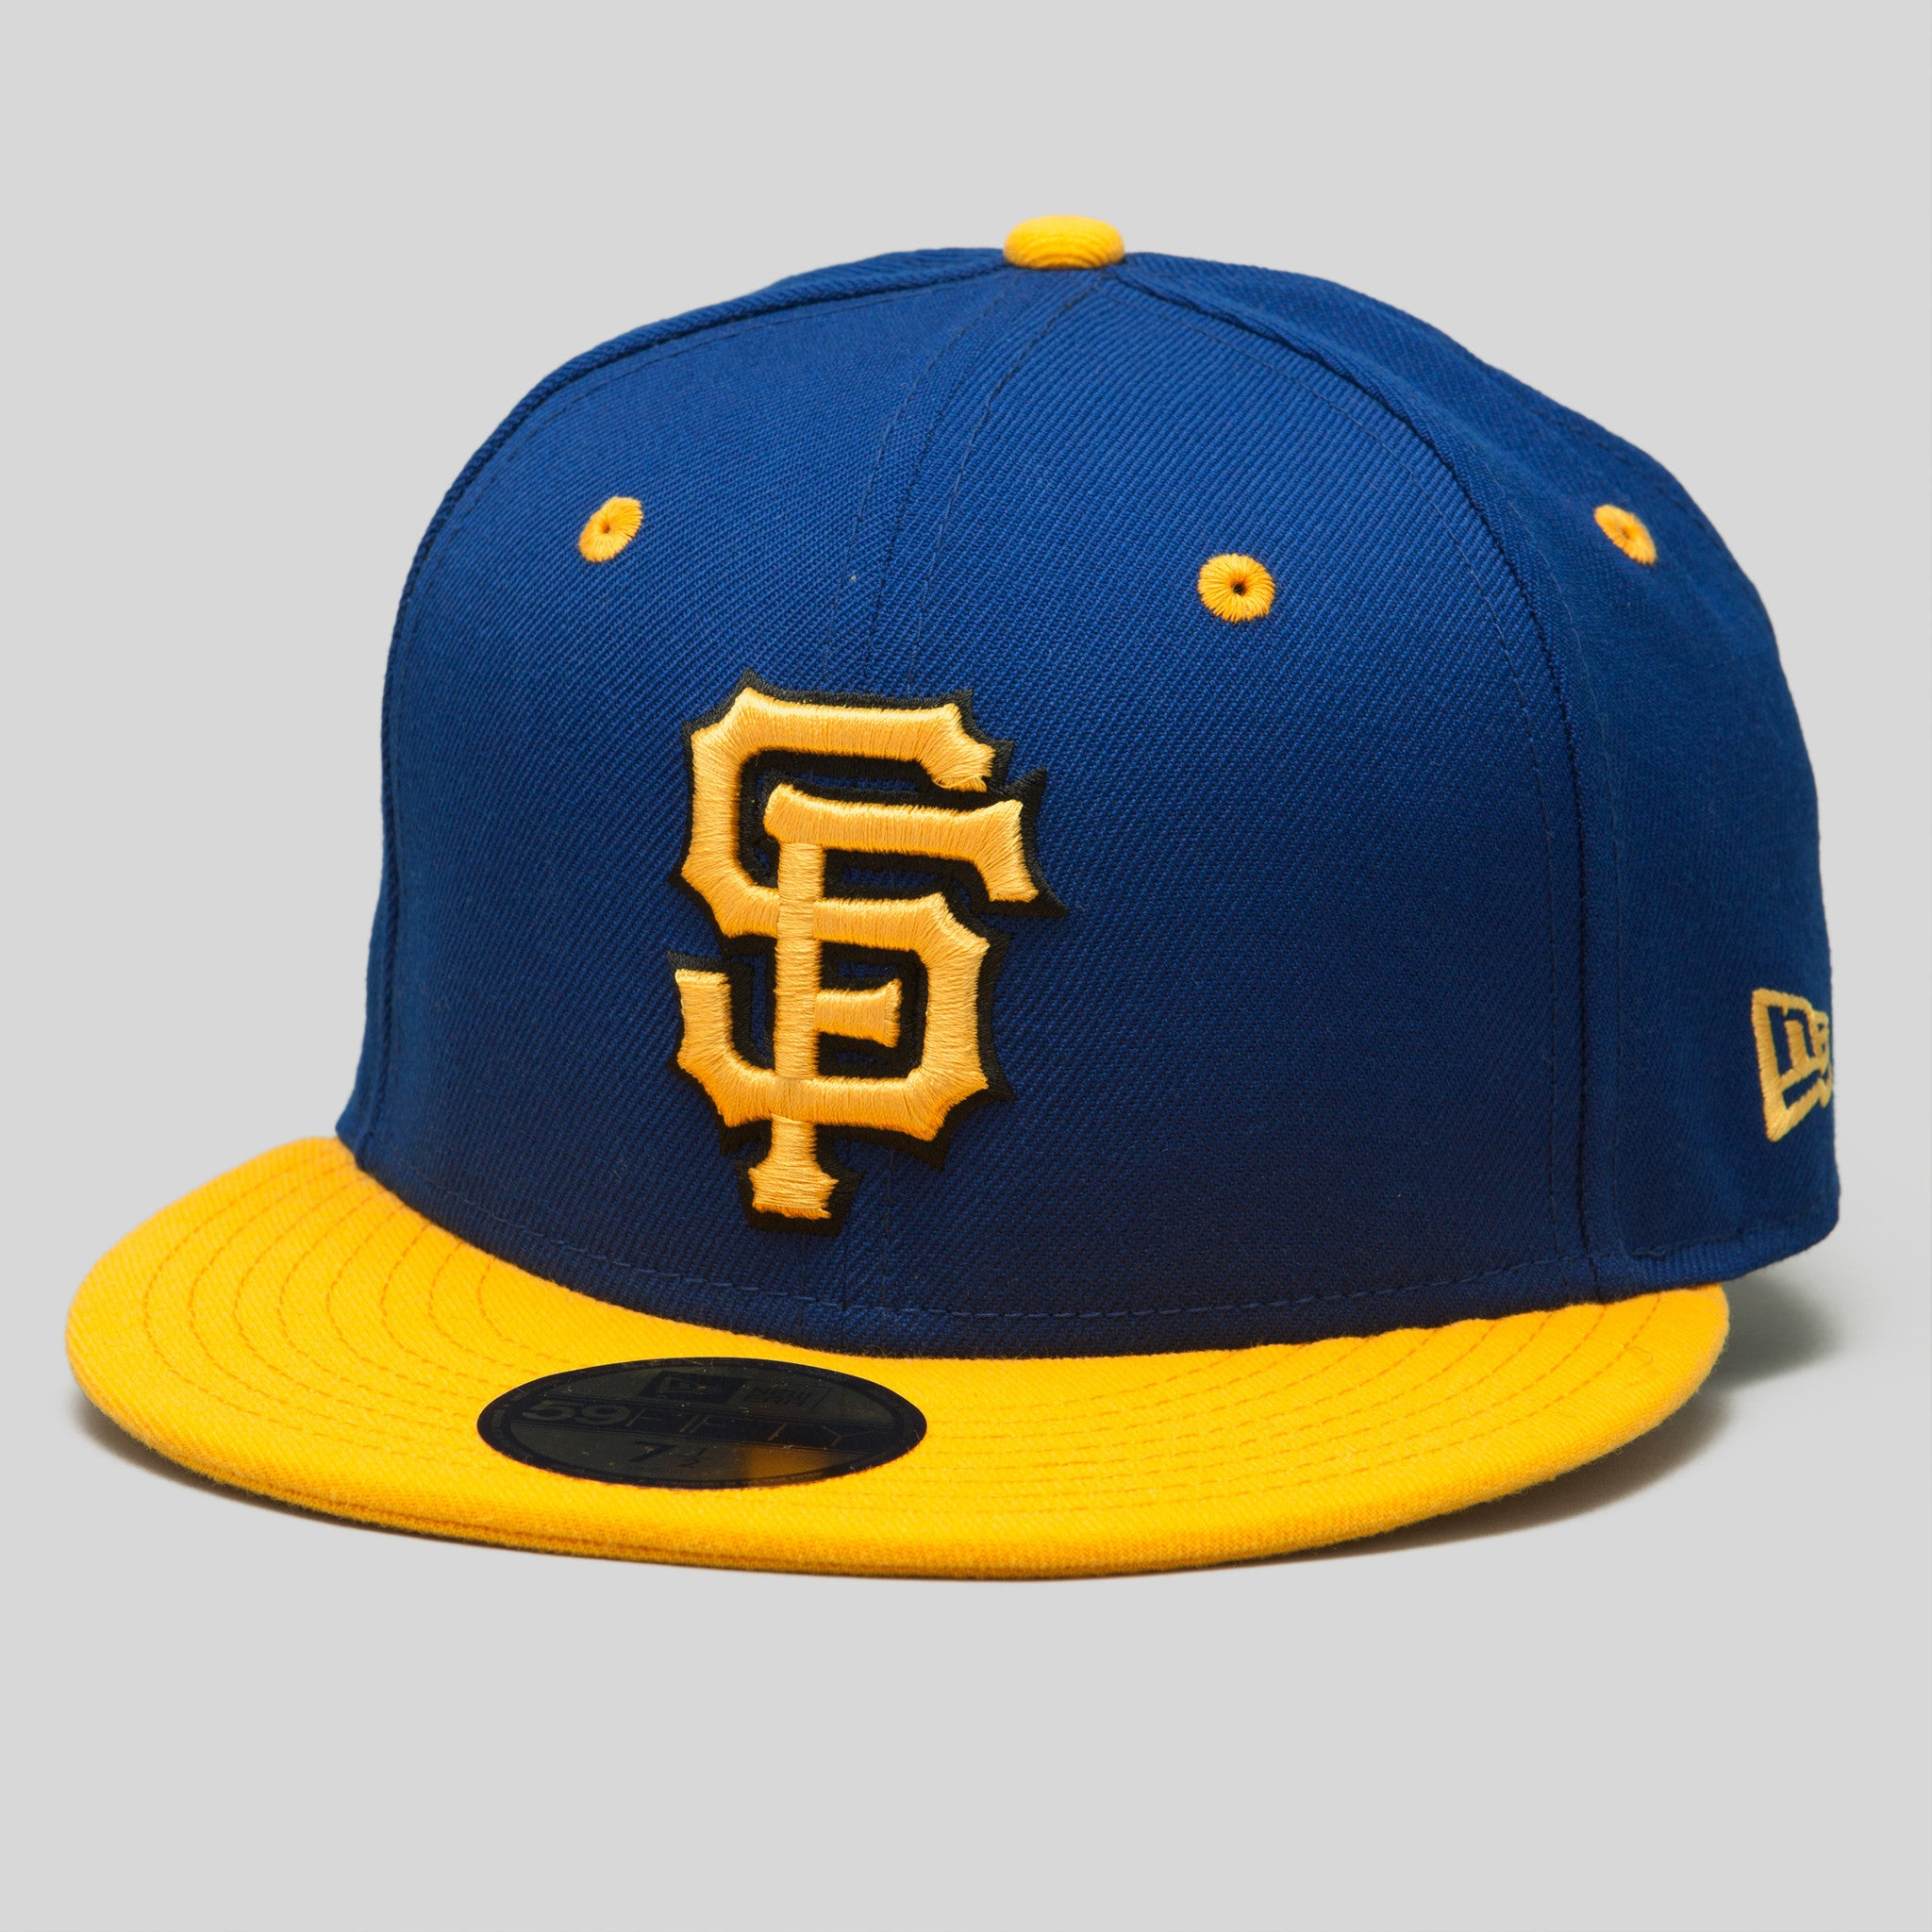 d9e1ef7006d63e Upper Playground - Lux - SF Giants New Era Fitted Cap in Royal/Gold